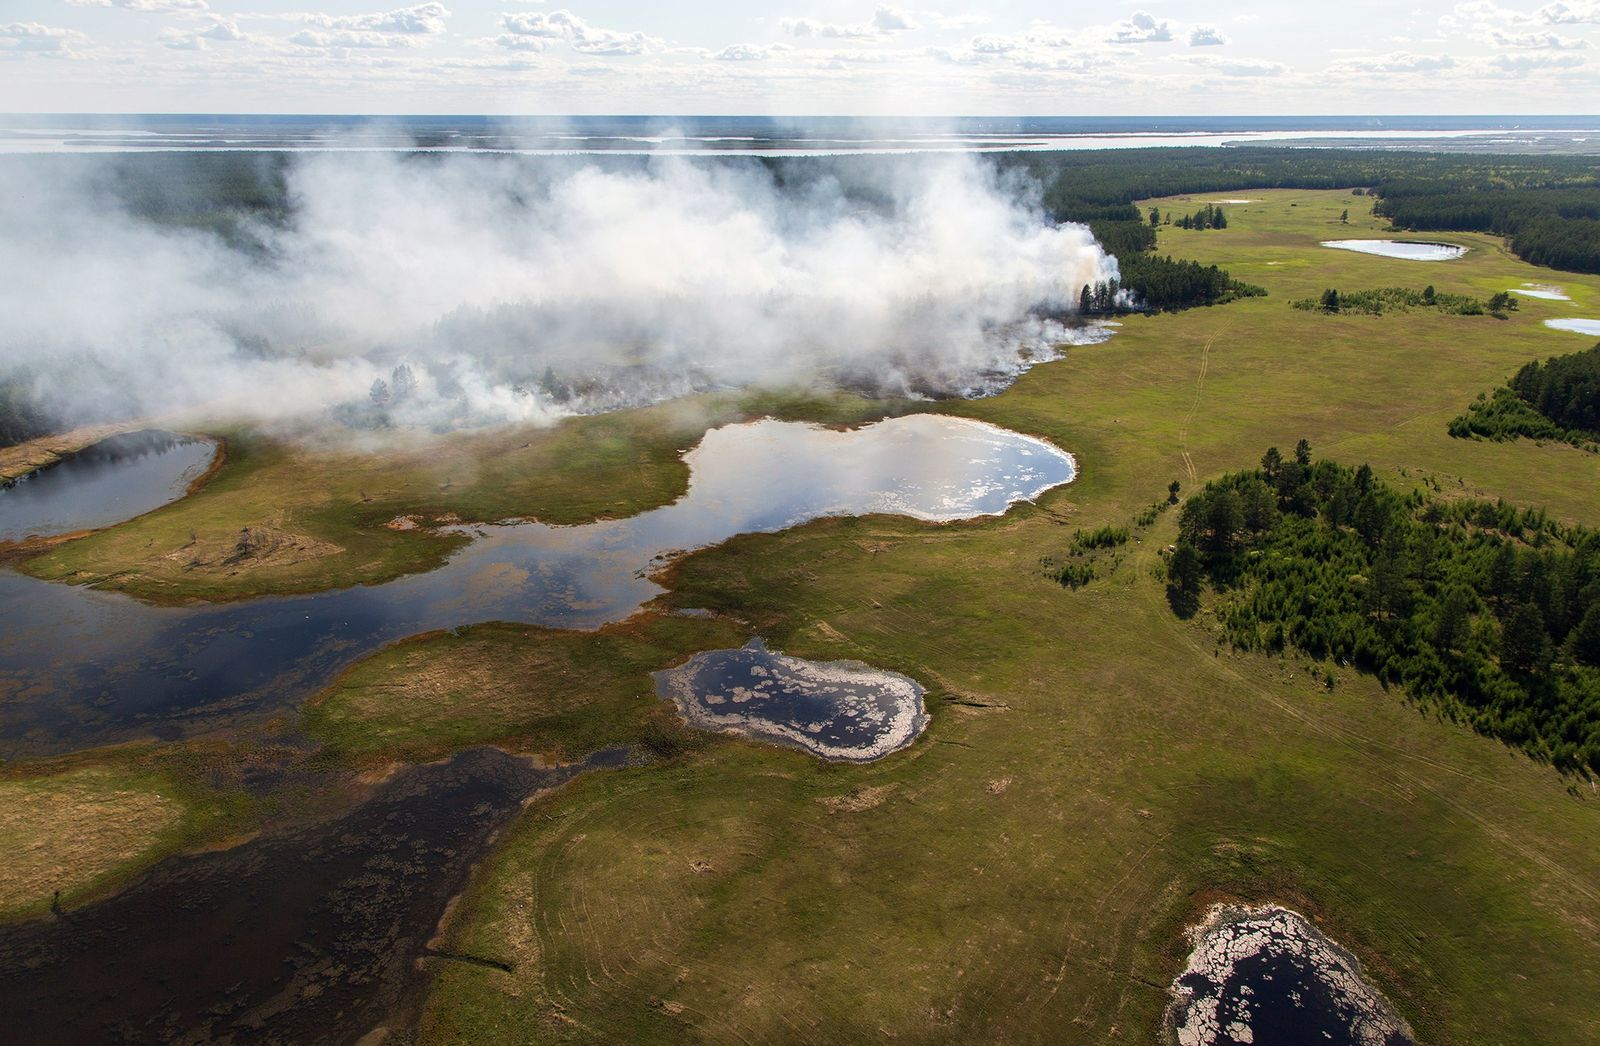 A heat wave thawed Siberia's tundra. Now, it's on fire.